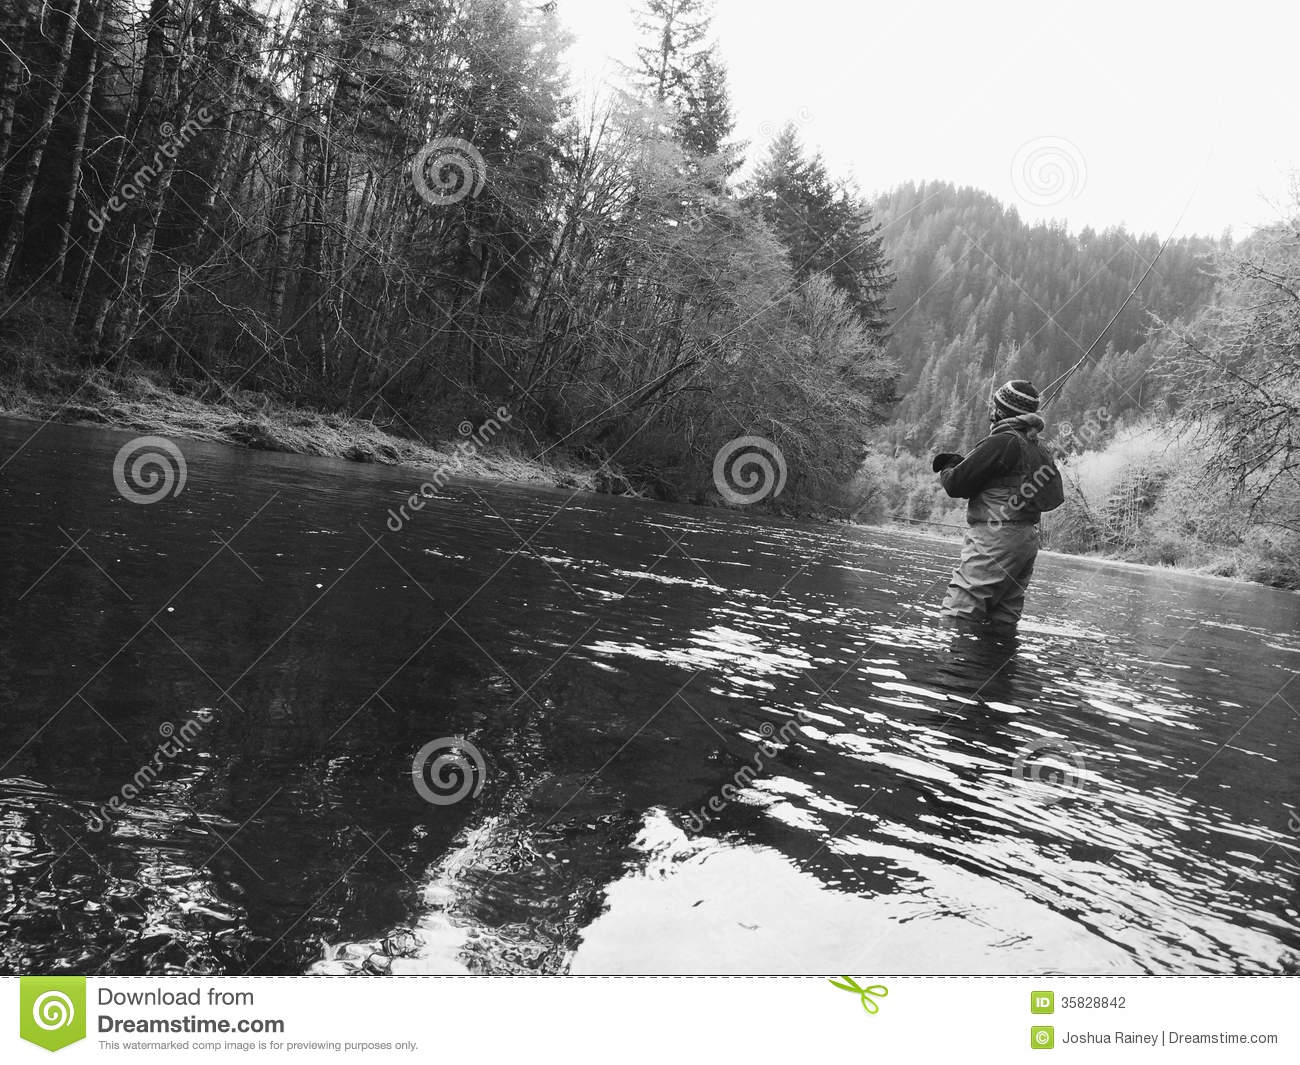 Man fly fishing in cold winter weather stock photo image for Fishing in cold weather